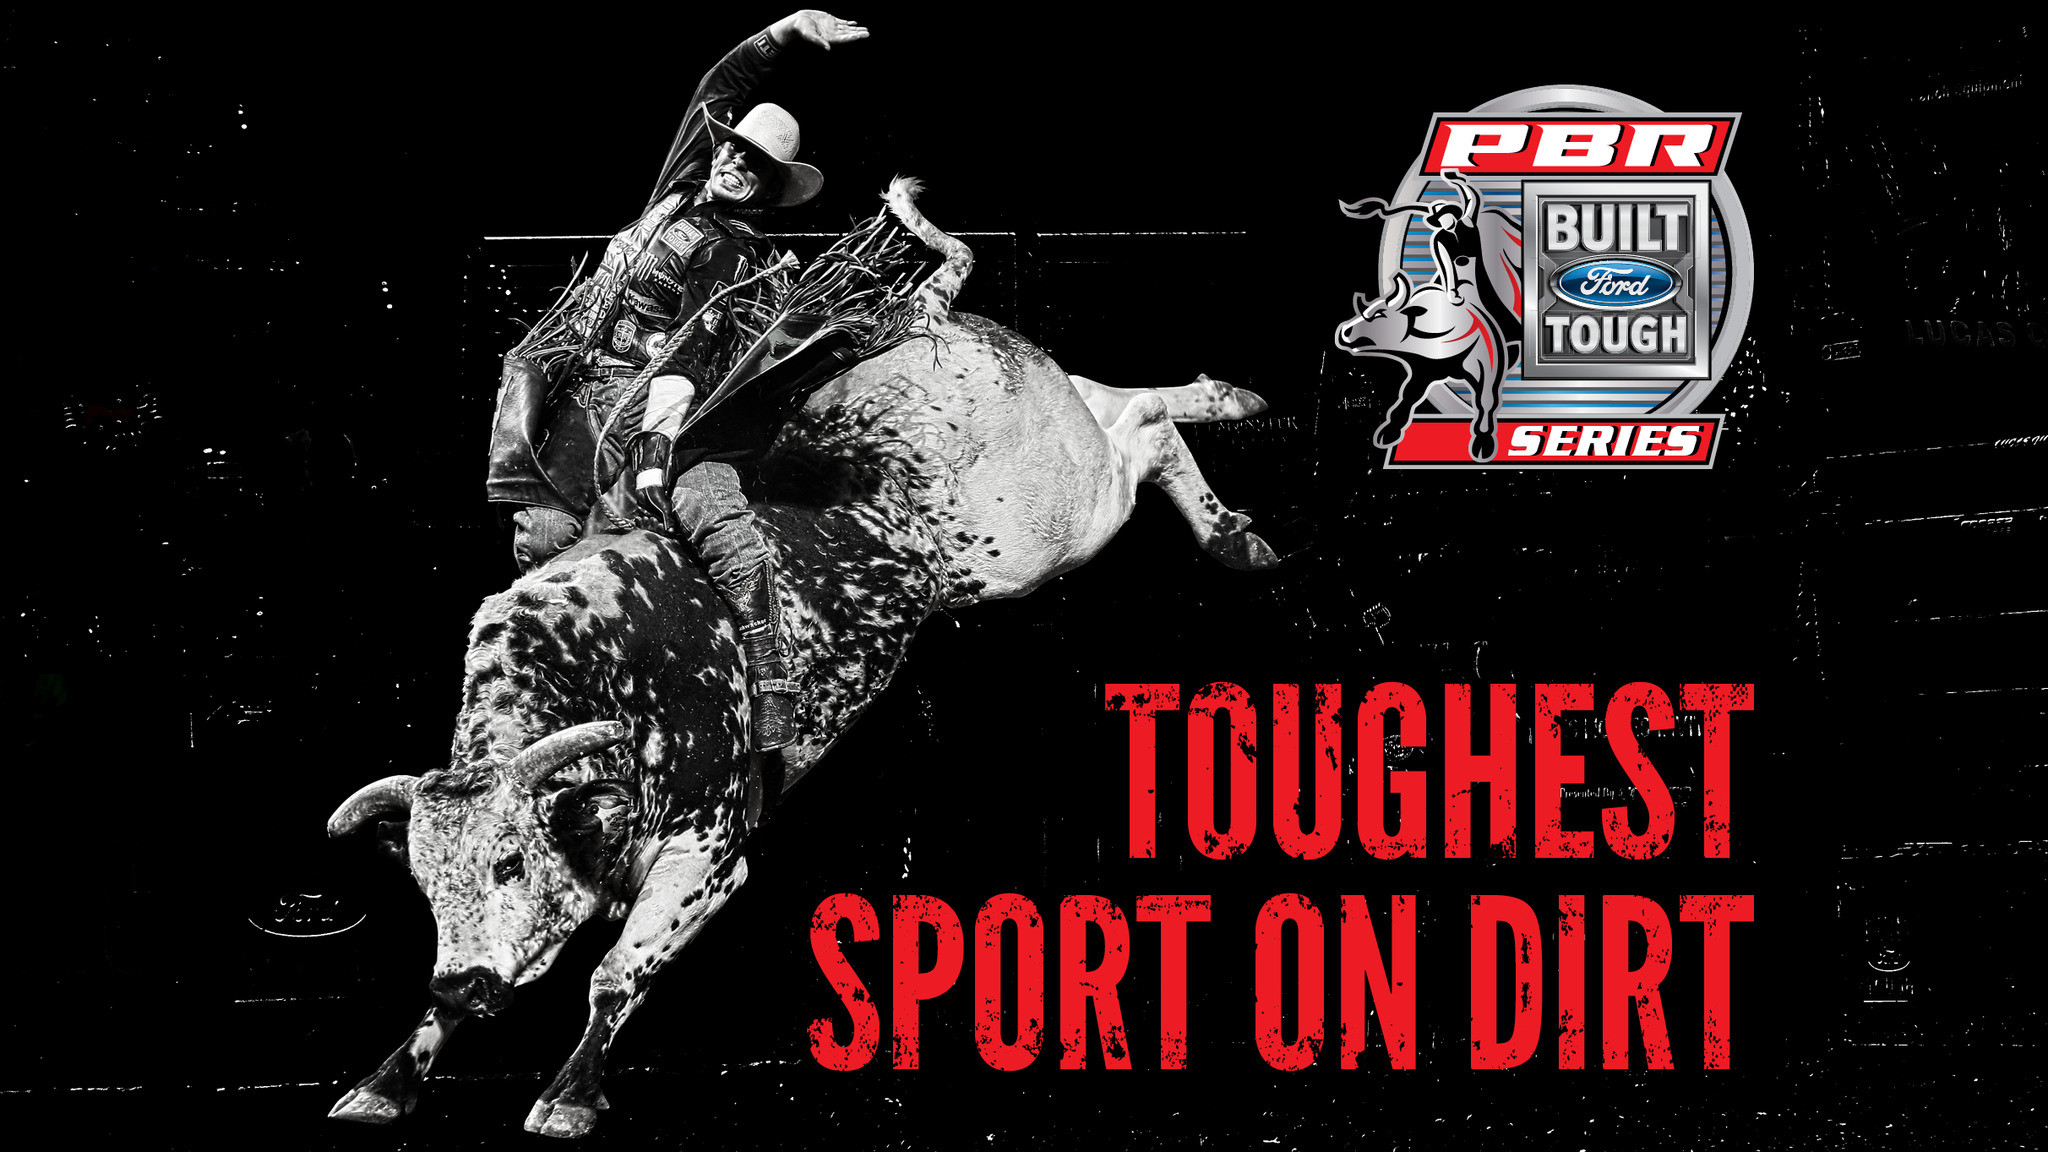 2048x1152 Built Ford Tough Series: PBR - Professional Bull Riders